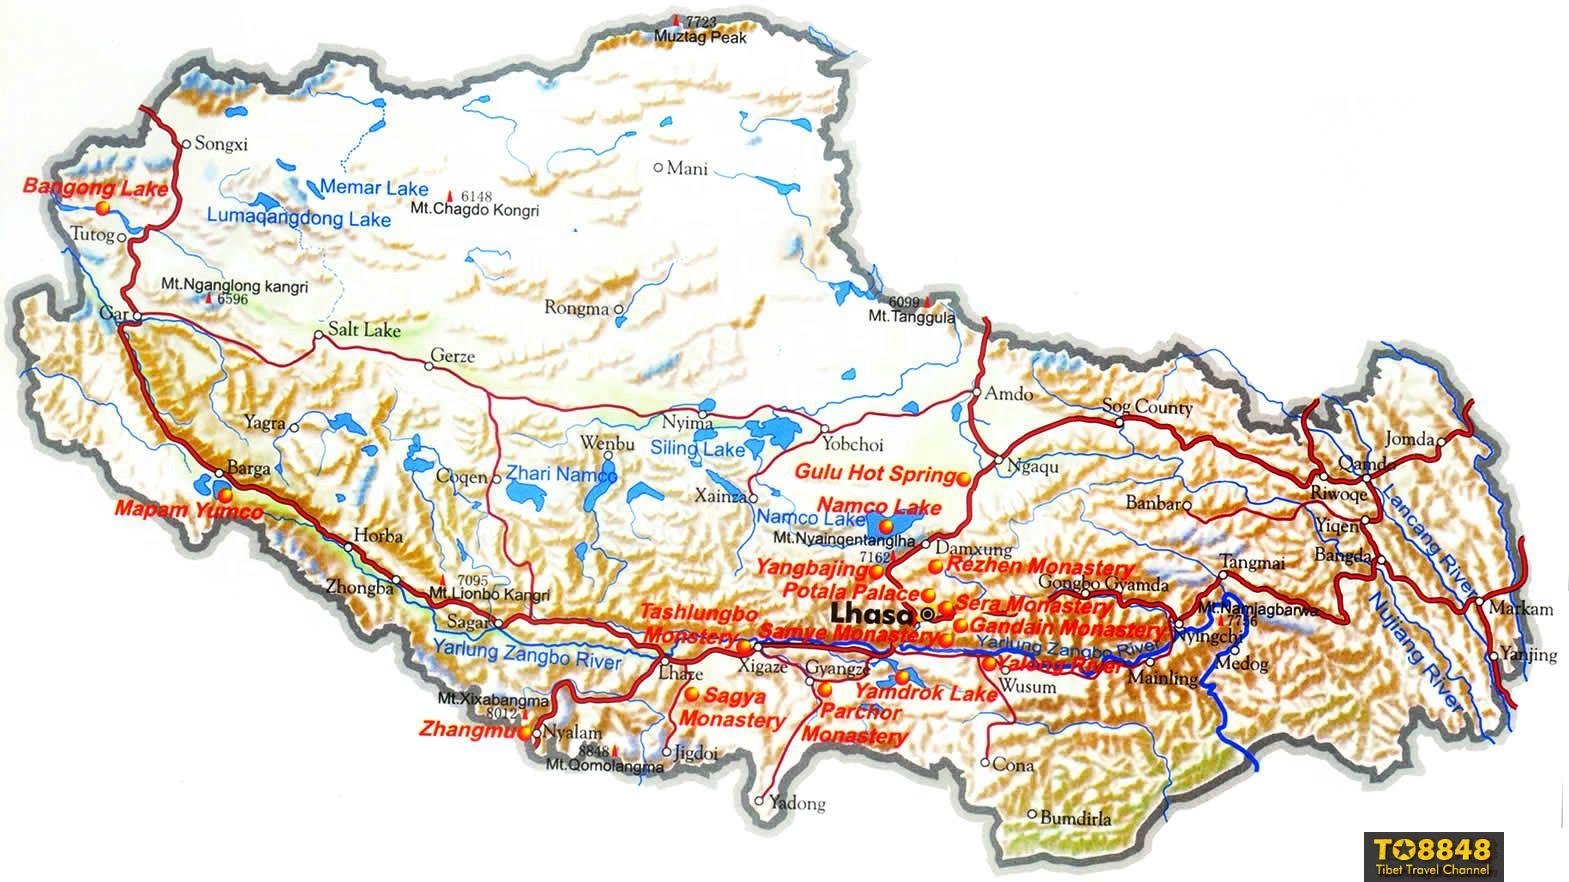 Tibet's tourism map - the English version map